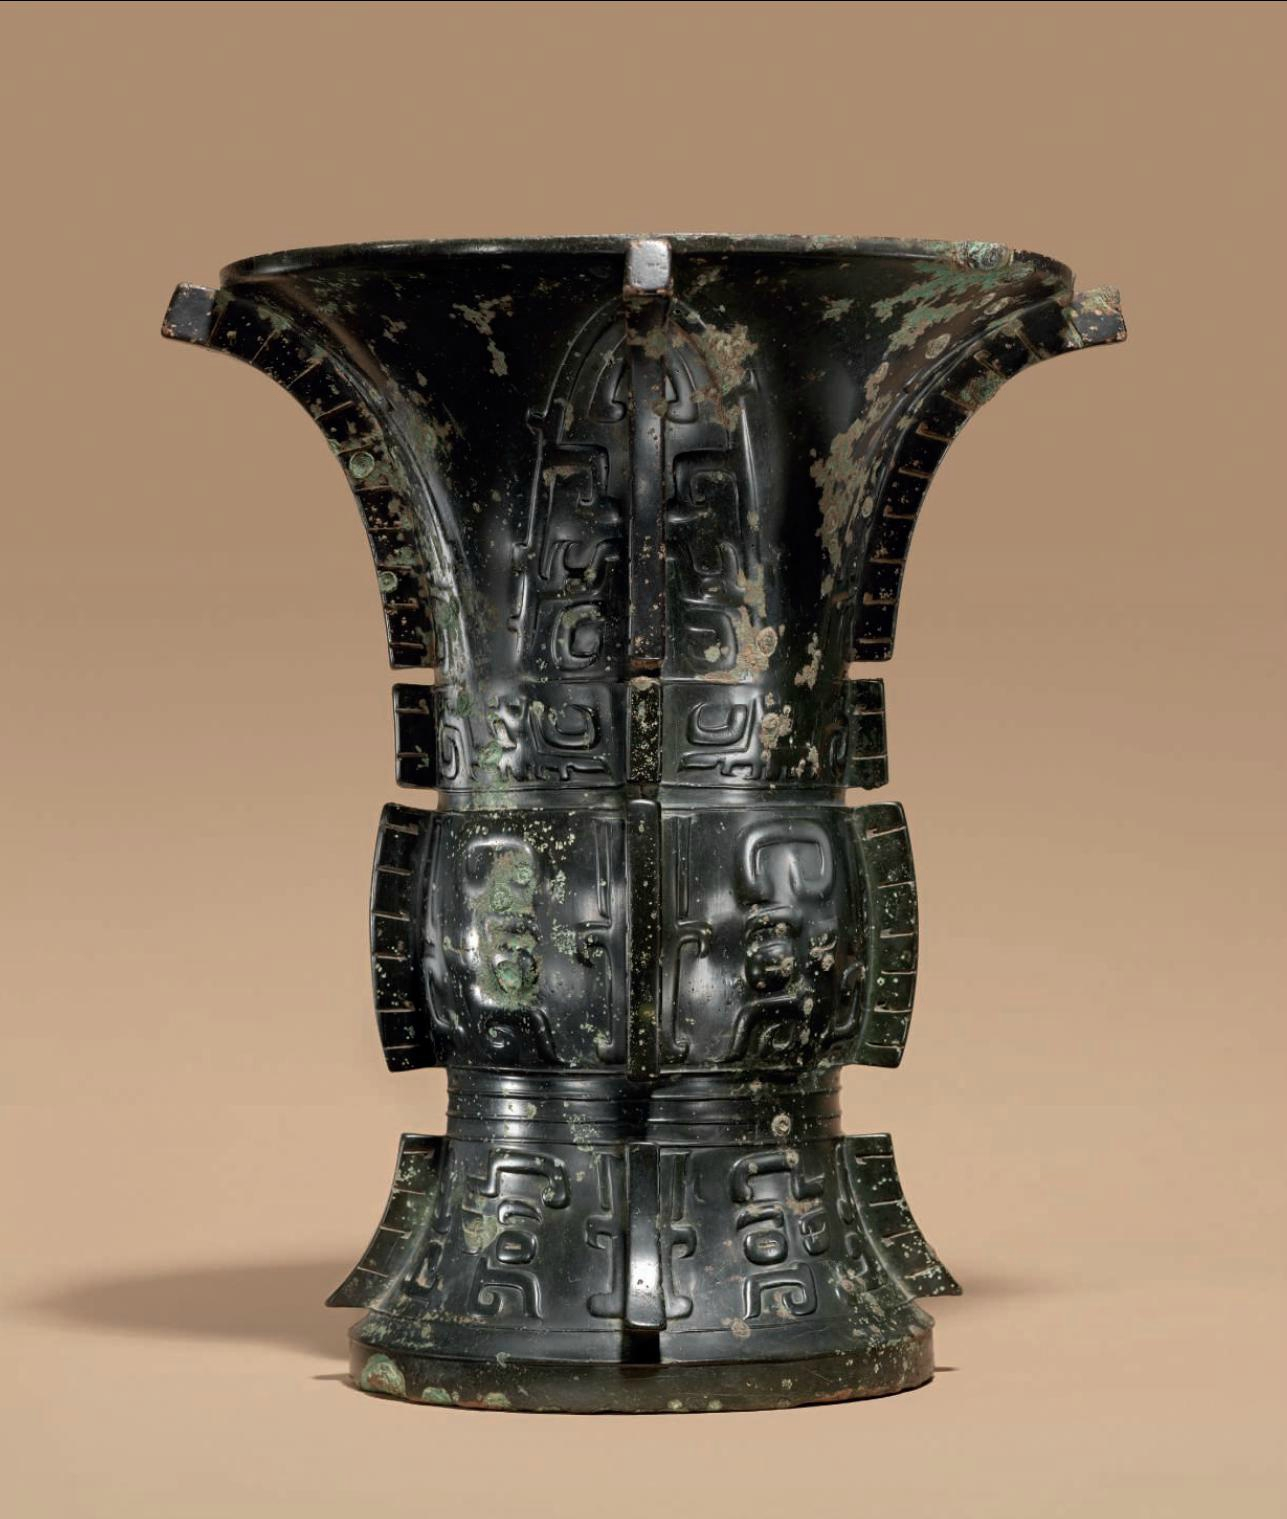 A magnificent and important bronze ritual wine vessel, Zun ritual wine vessel dating to the late Shang- early western Zhou dynasty